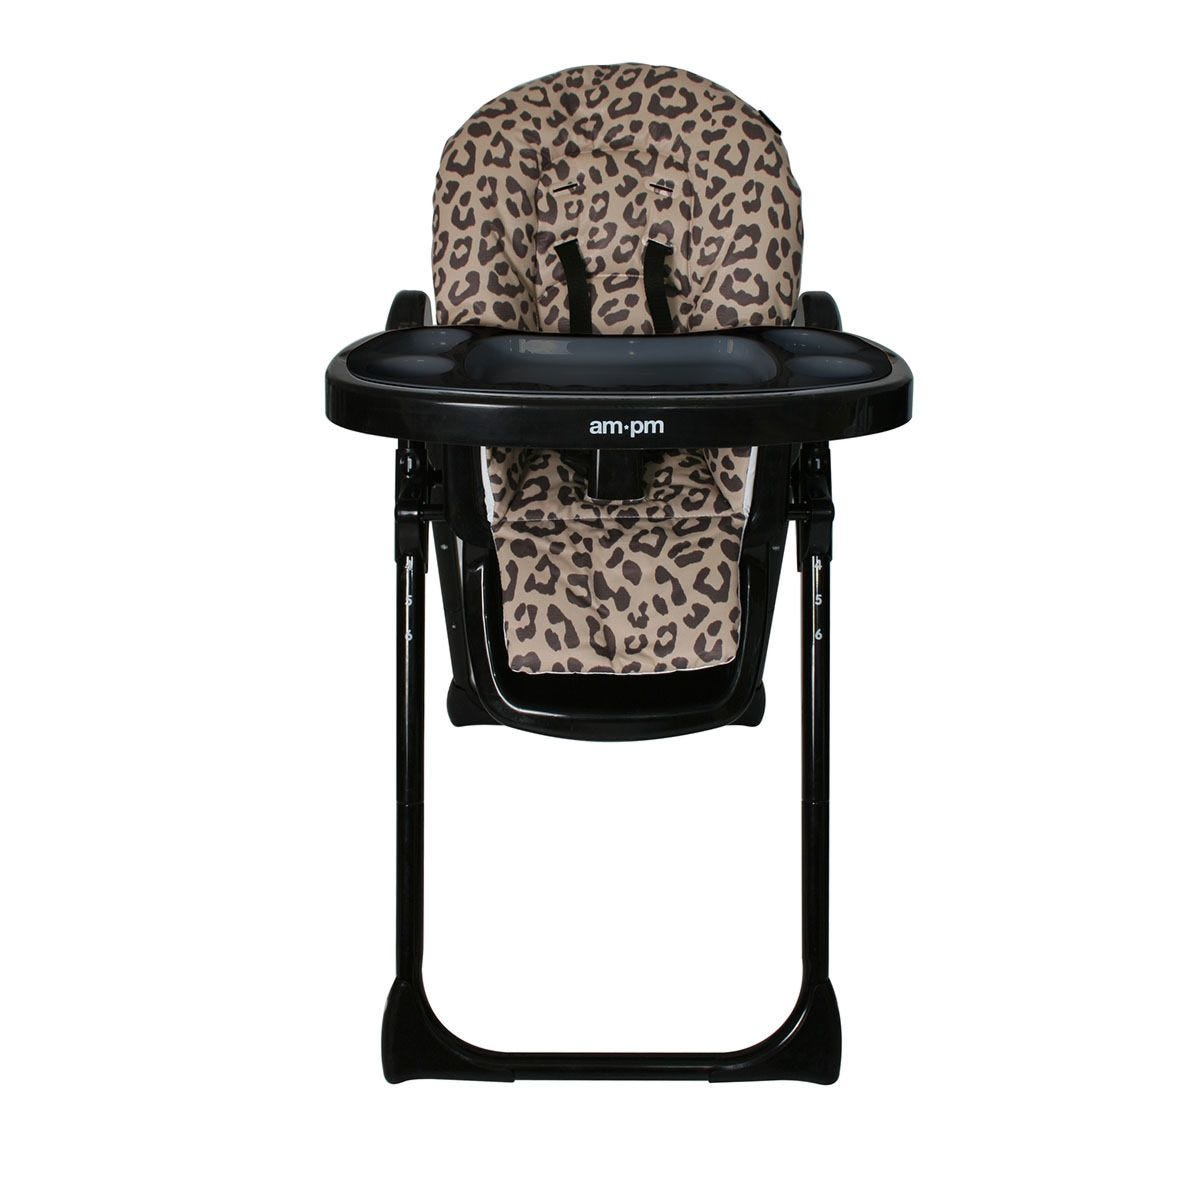 My Babiie Christina Milian AMPM Leopard Premium Highchair - Black